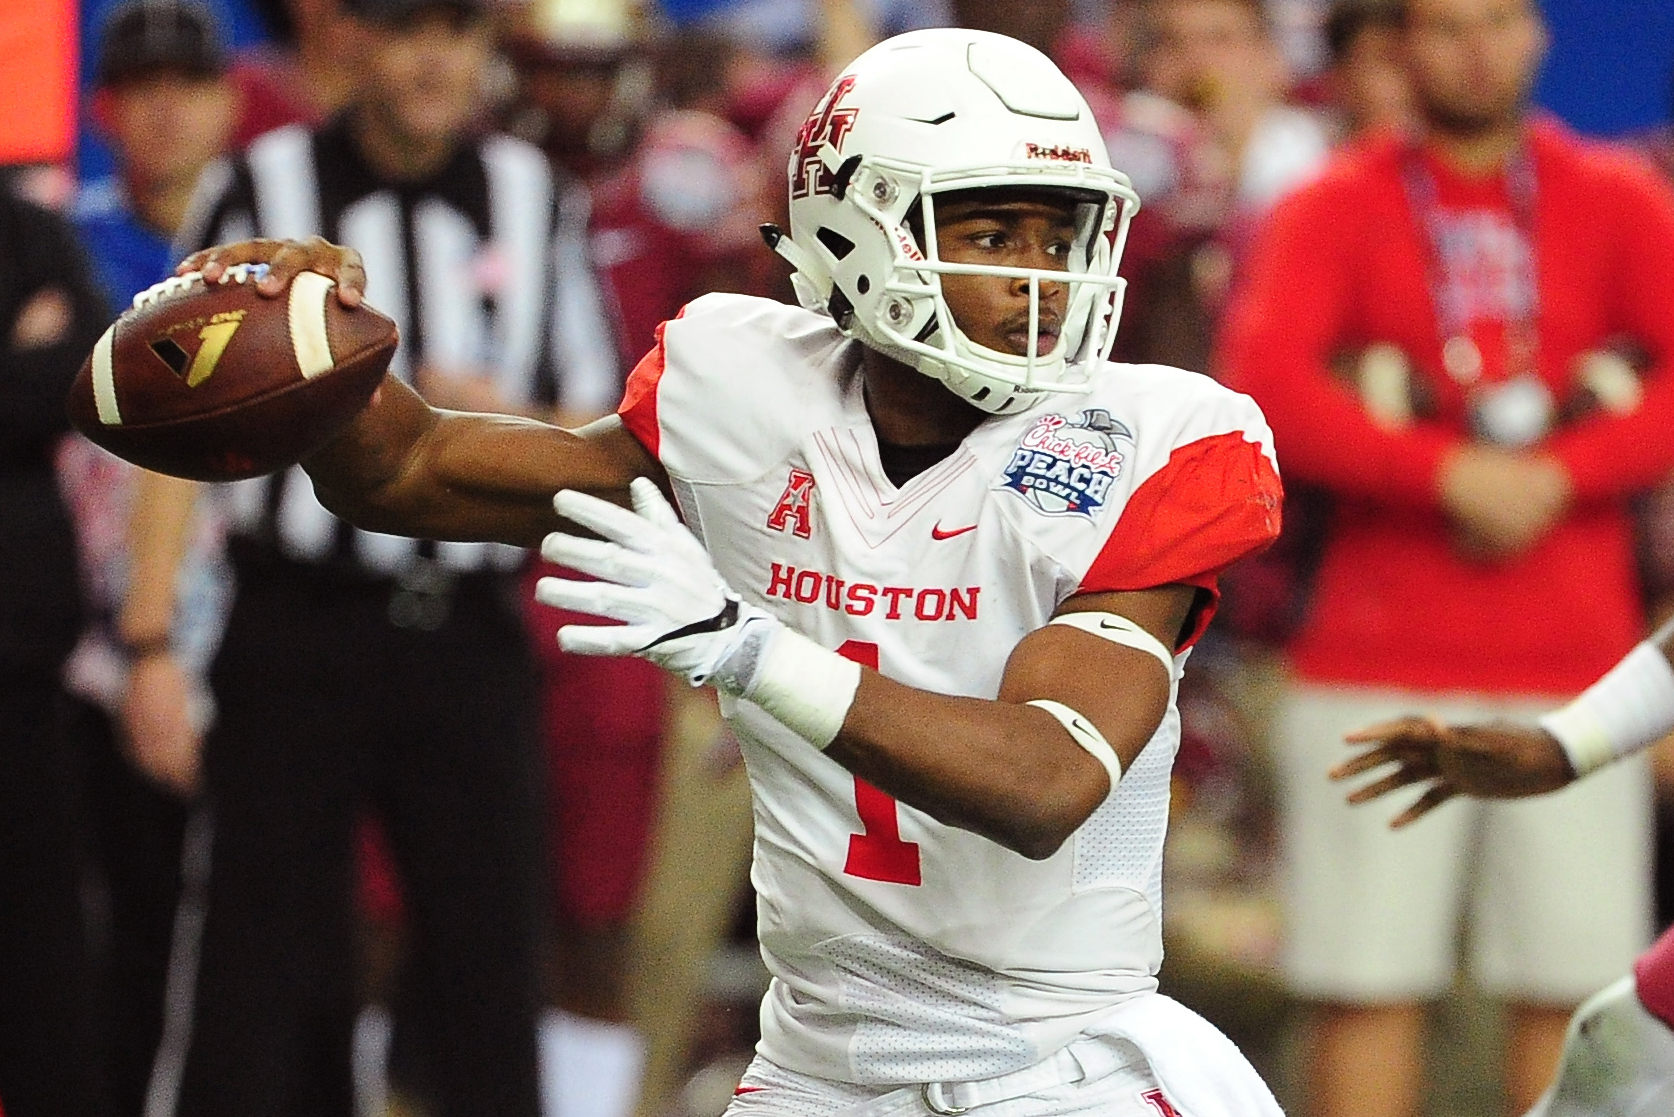 Greg Ward, Jr. #1 of the Houston Cougars passes against the Florida State Seminoles during the Chick-Fil-A Peach Bowl at the Georgia Dome on December 31, 2015 in Atlanta, Georgia.